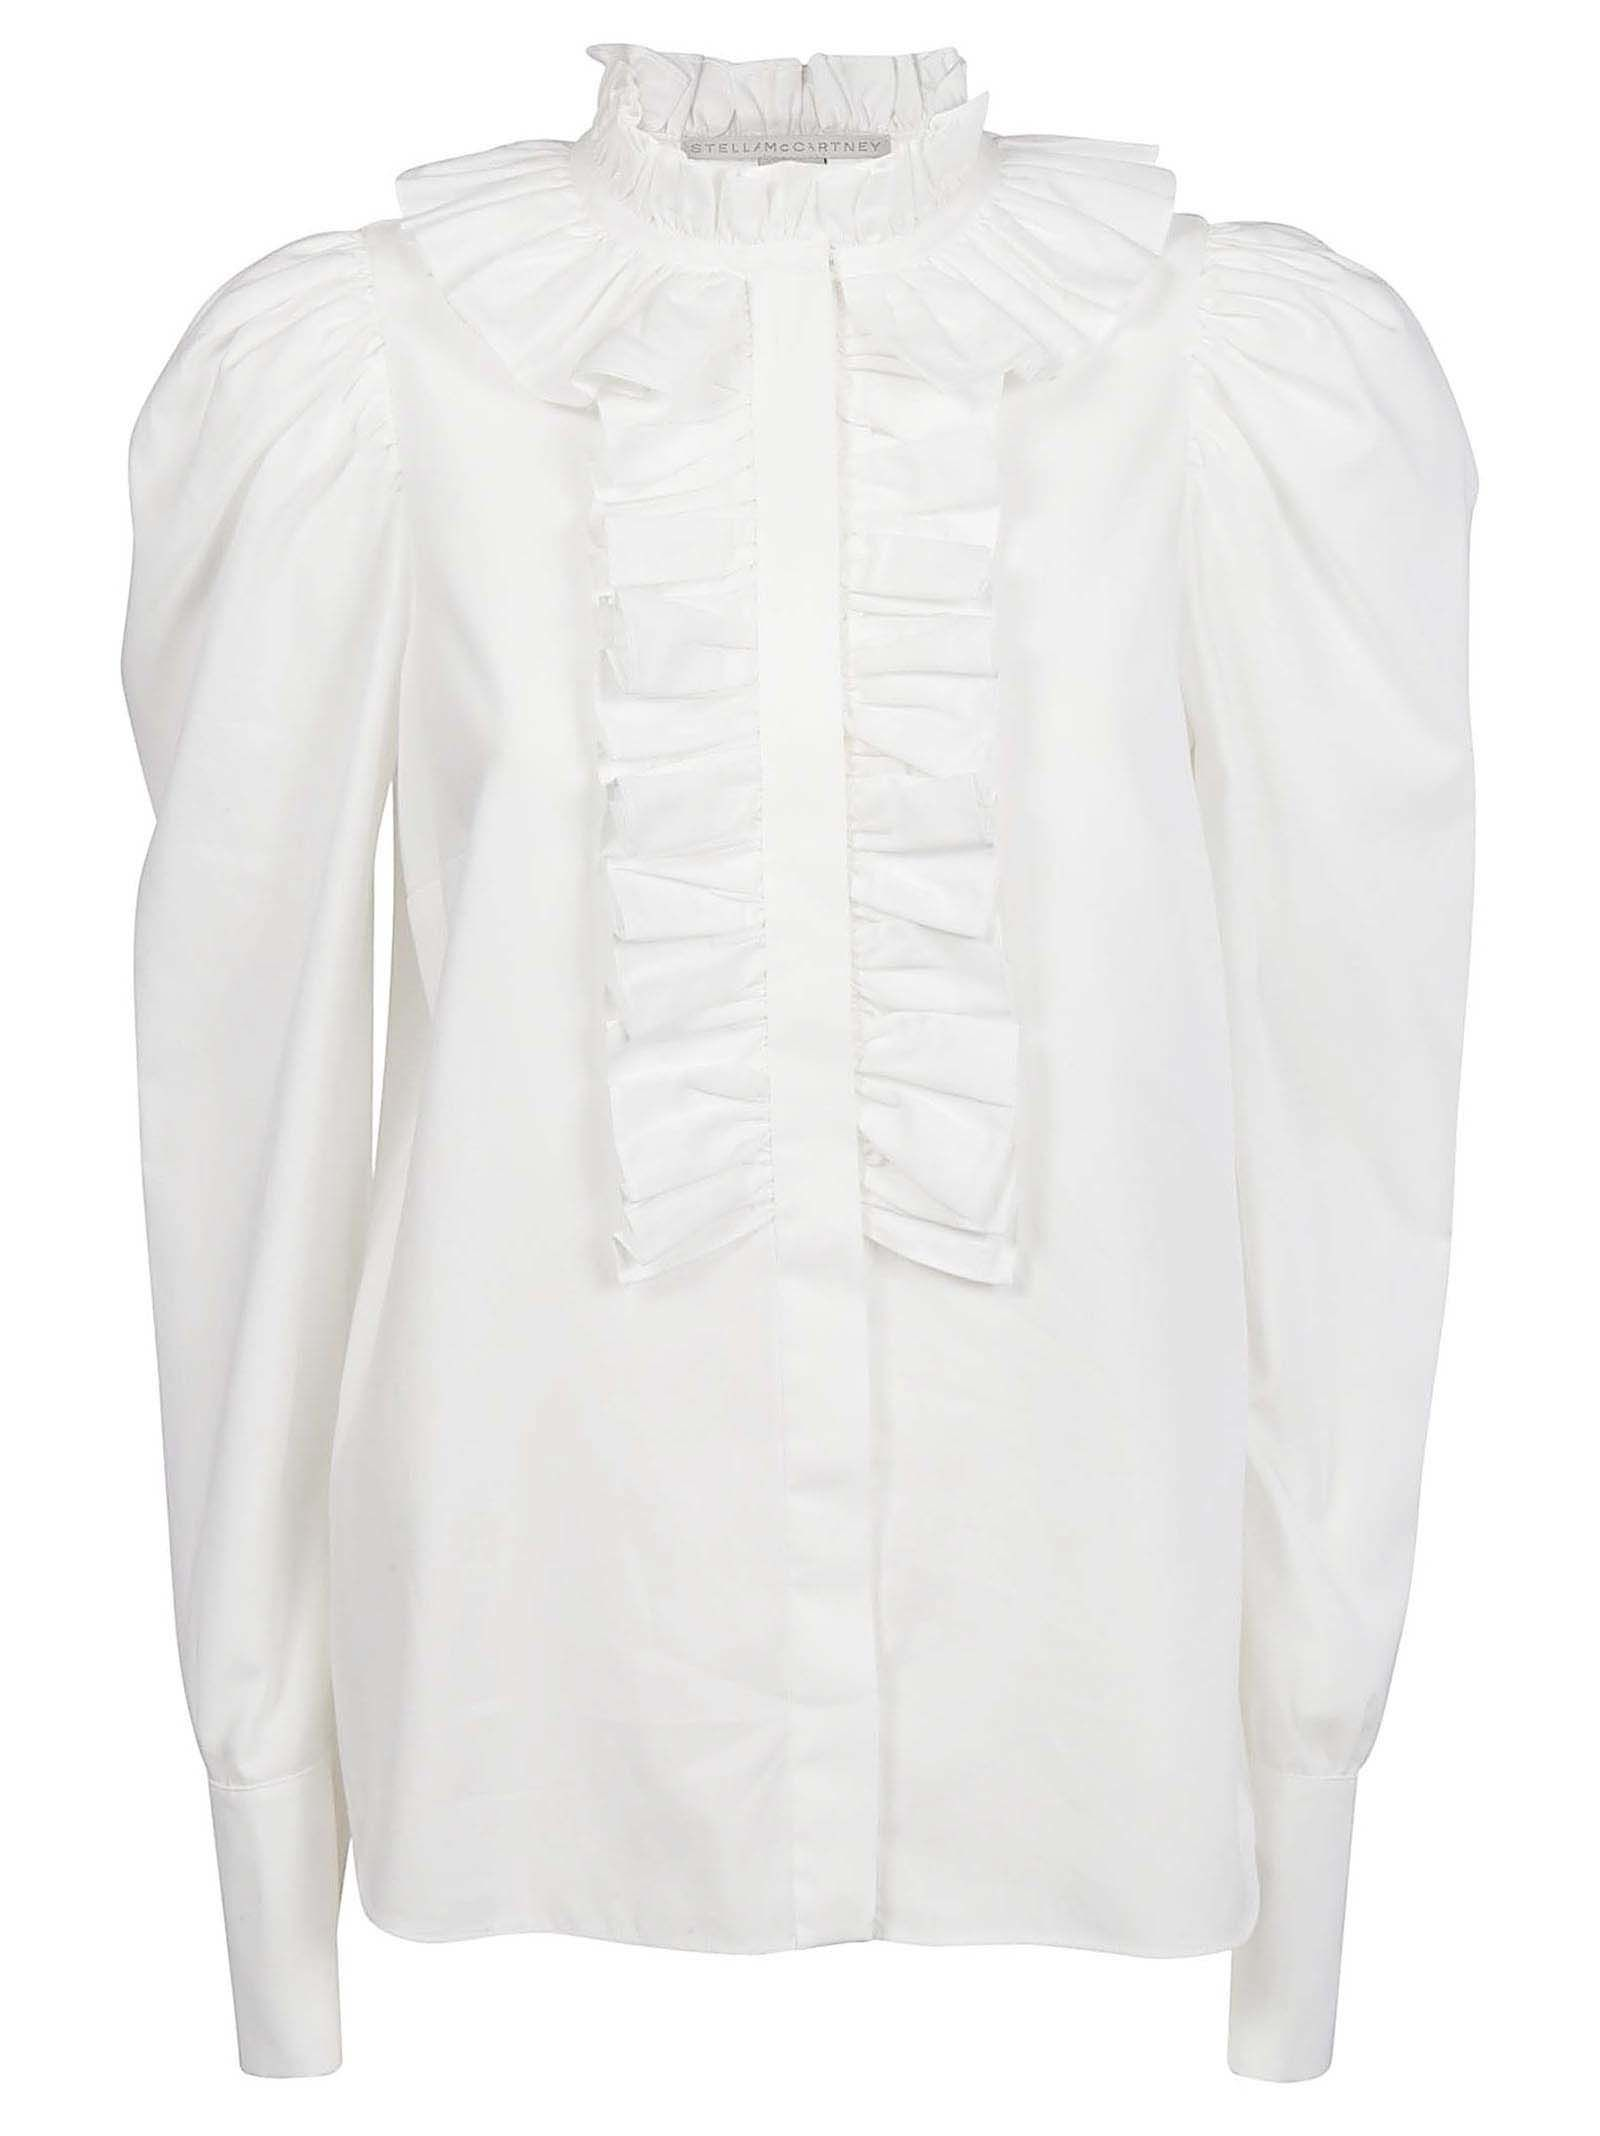 STELLA MCCARTNEY RUFFLED BLOUSE